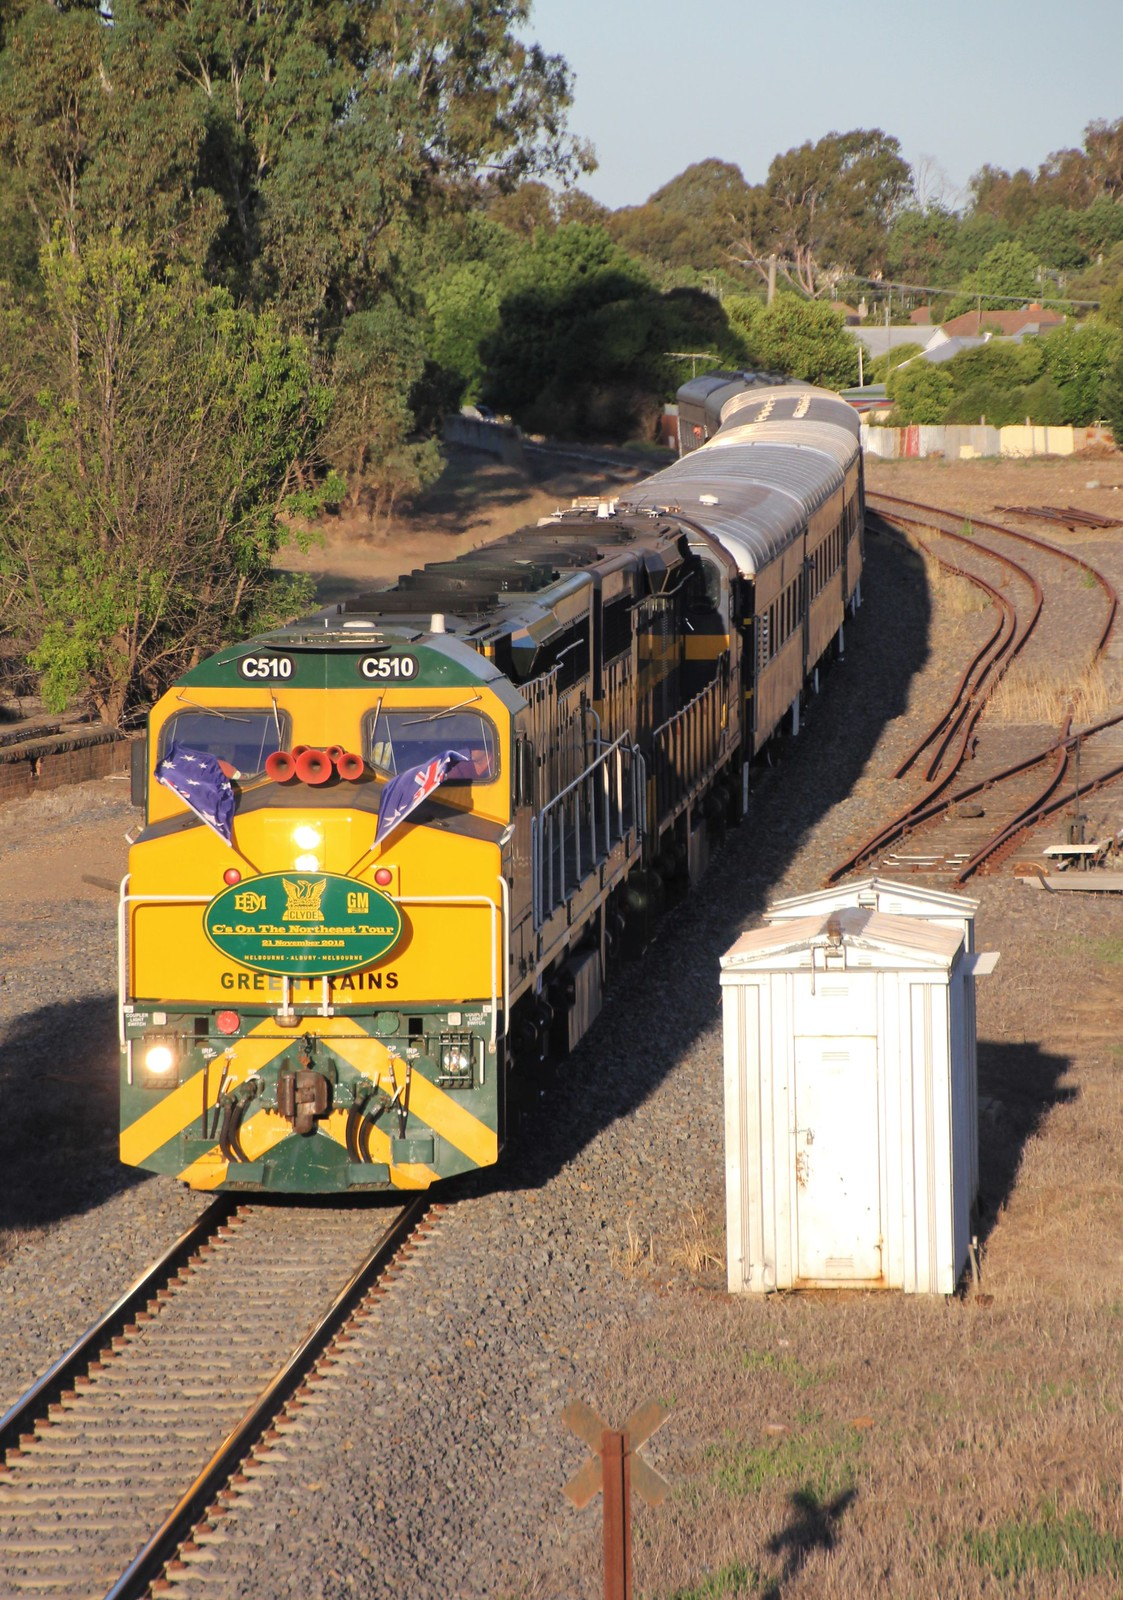 C510 and C501 slowly roll into Benalla to pick up the photo bus passengers by bukk05